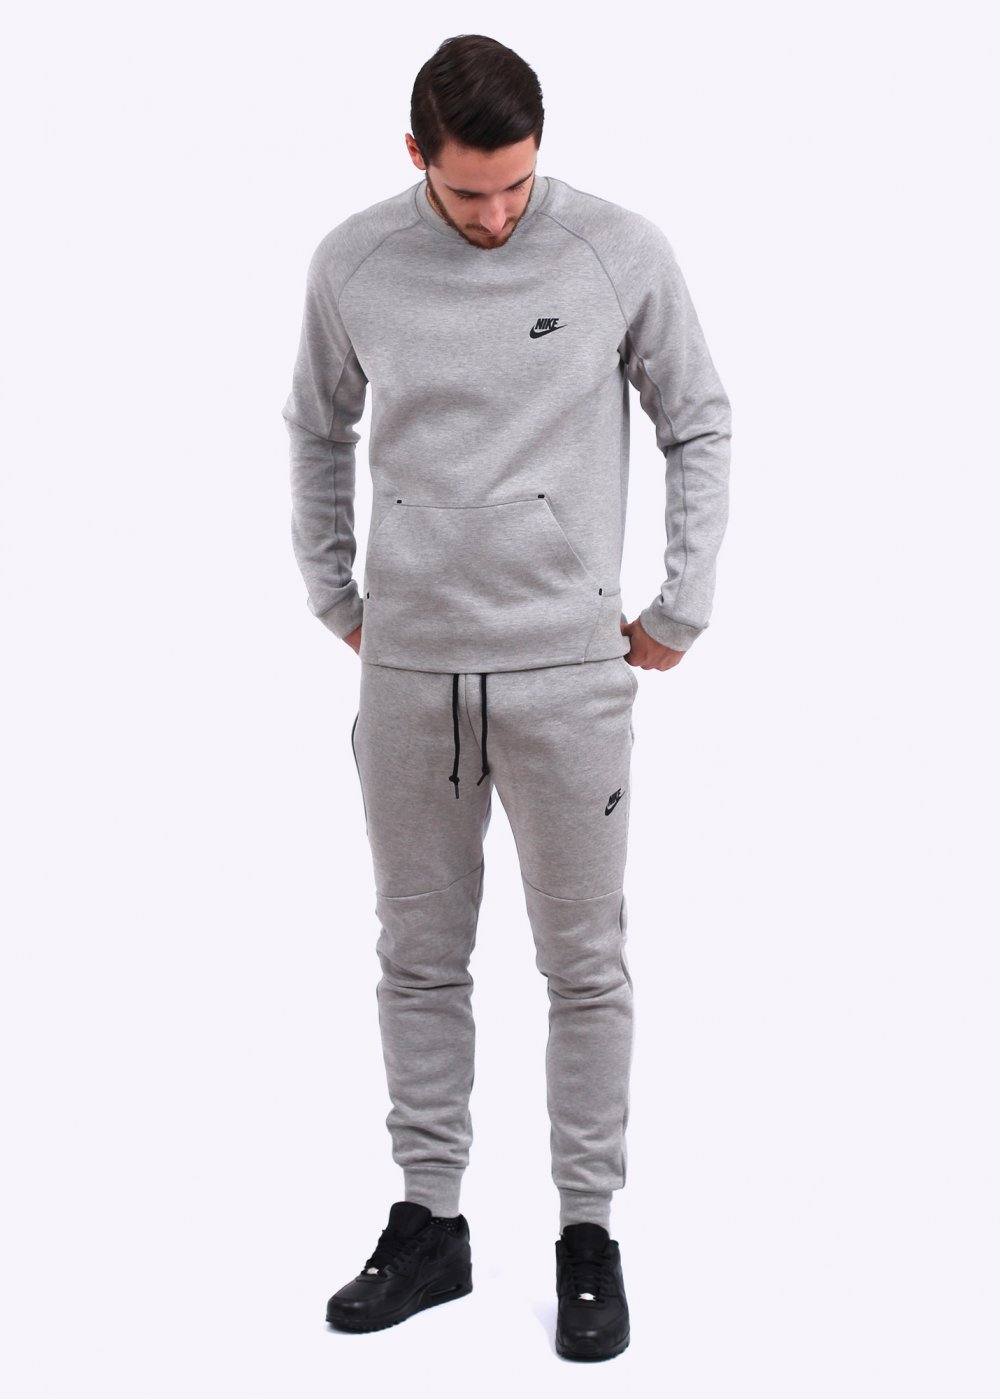 a2225d075fe0 Nike Sportswear Tech Fleece Pant - Grey